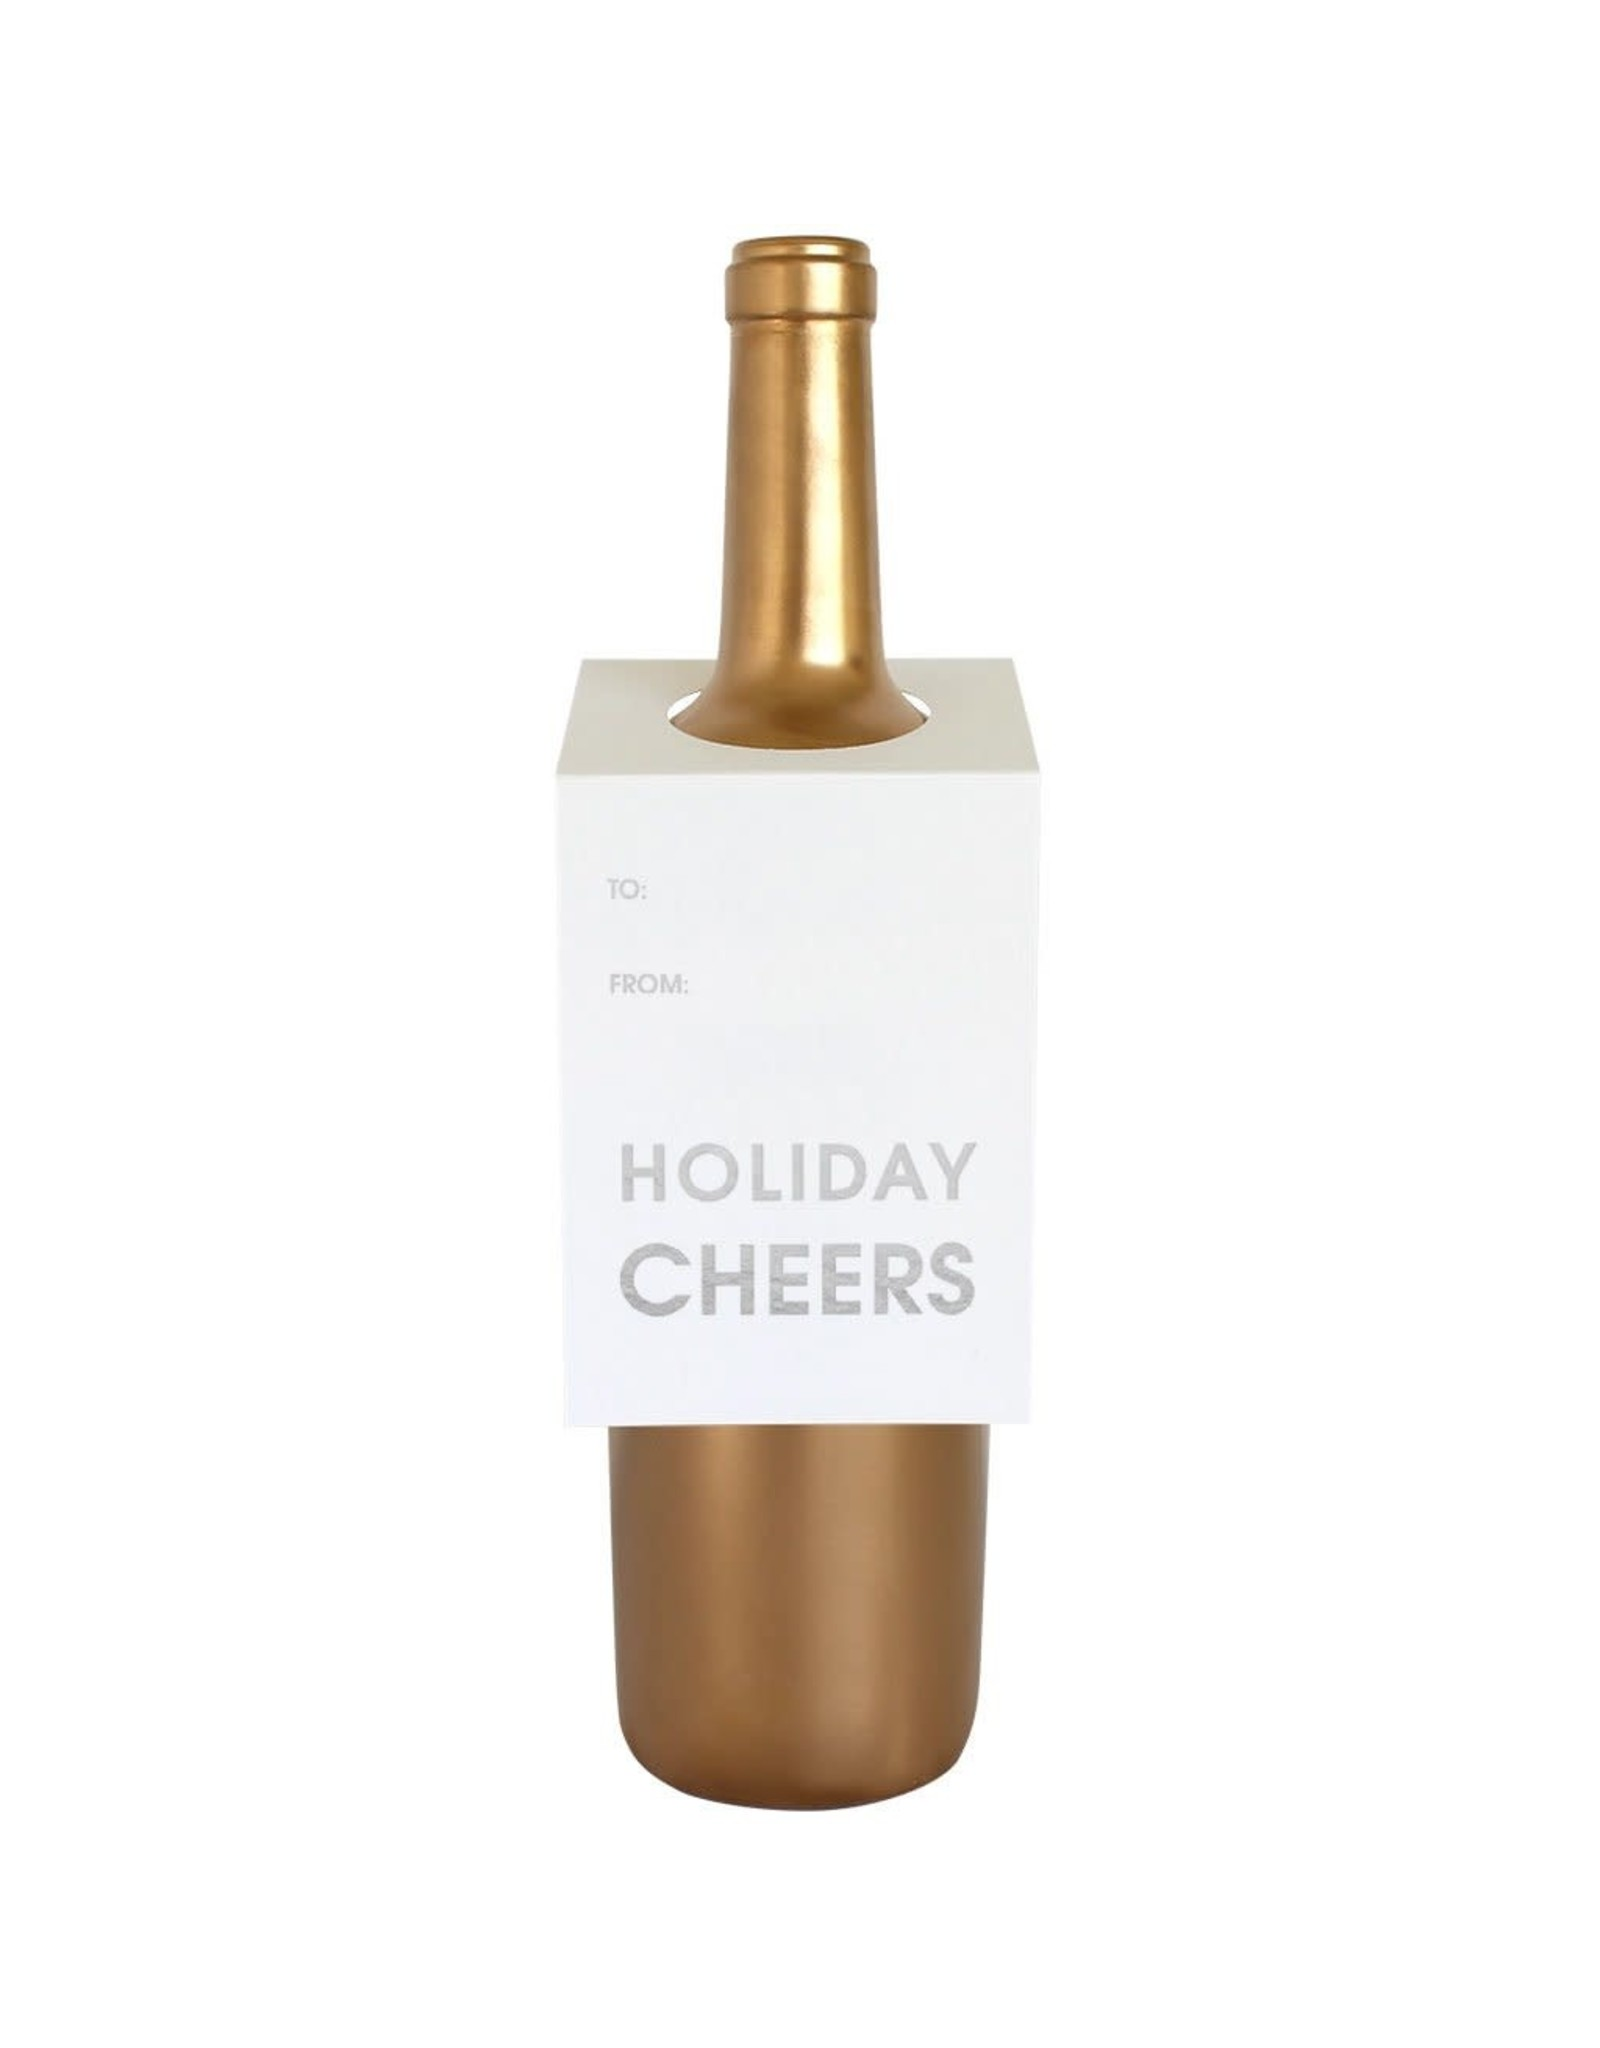 Chez Gagne Holiday Cheers - Wine & Spirit Tag